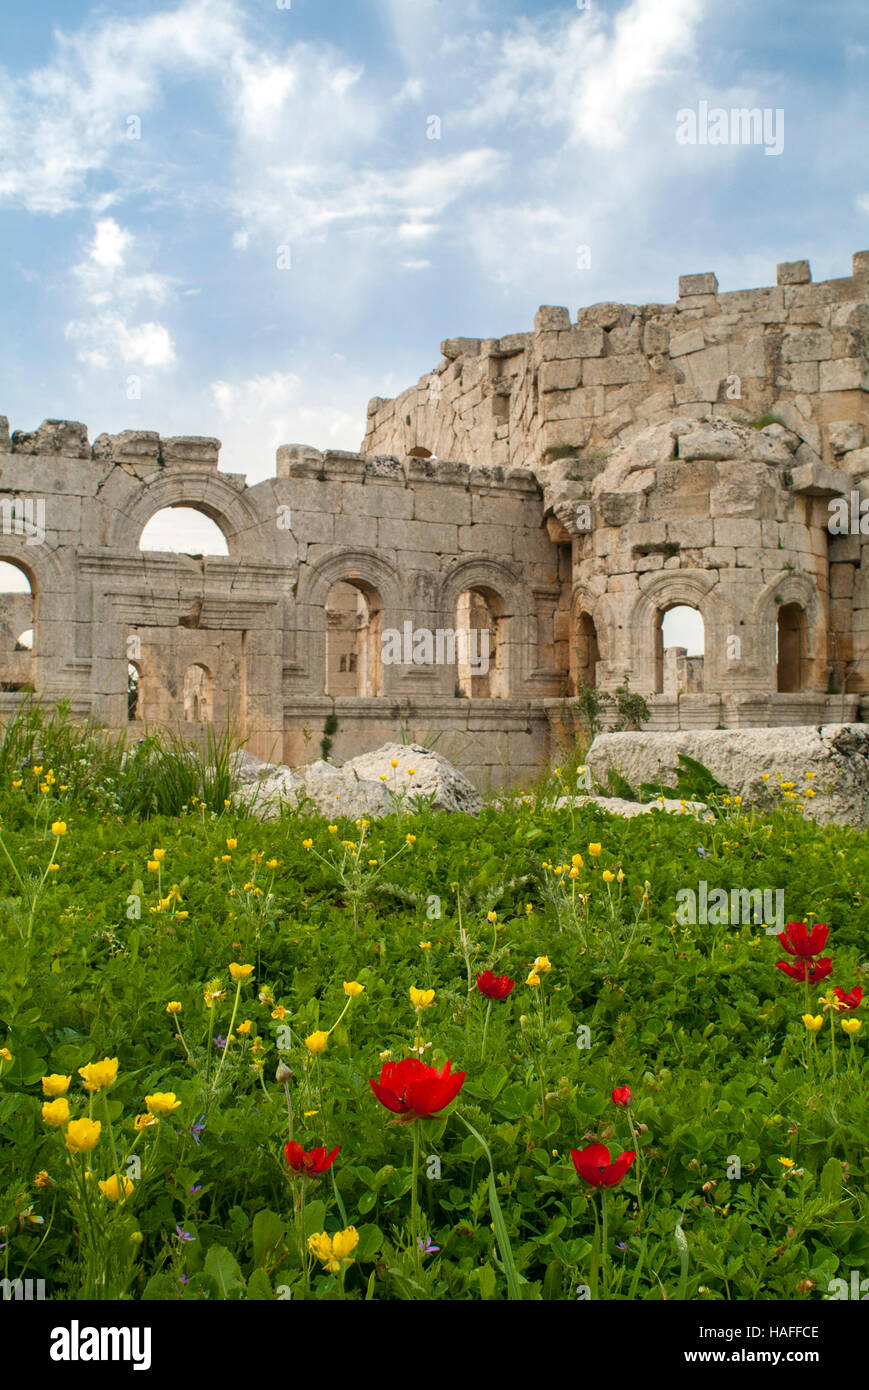 The ruins at the Church of Saint Simeon Stylites, built in the the 5th century AD. - Stock Image